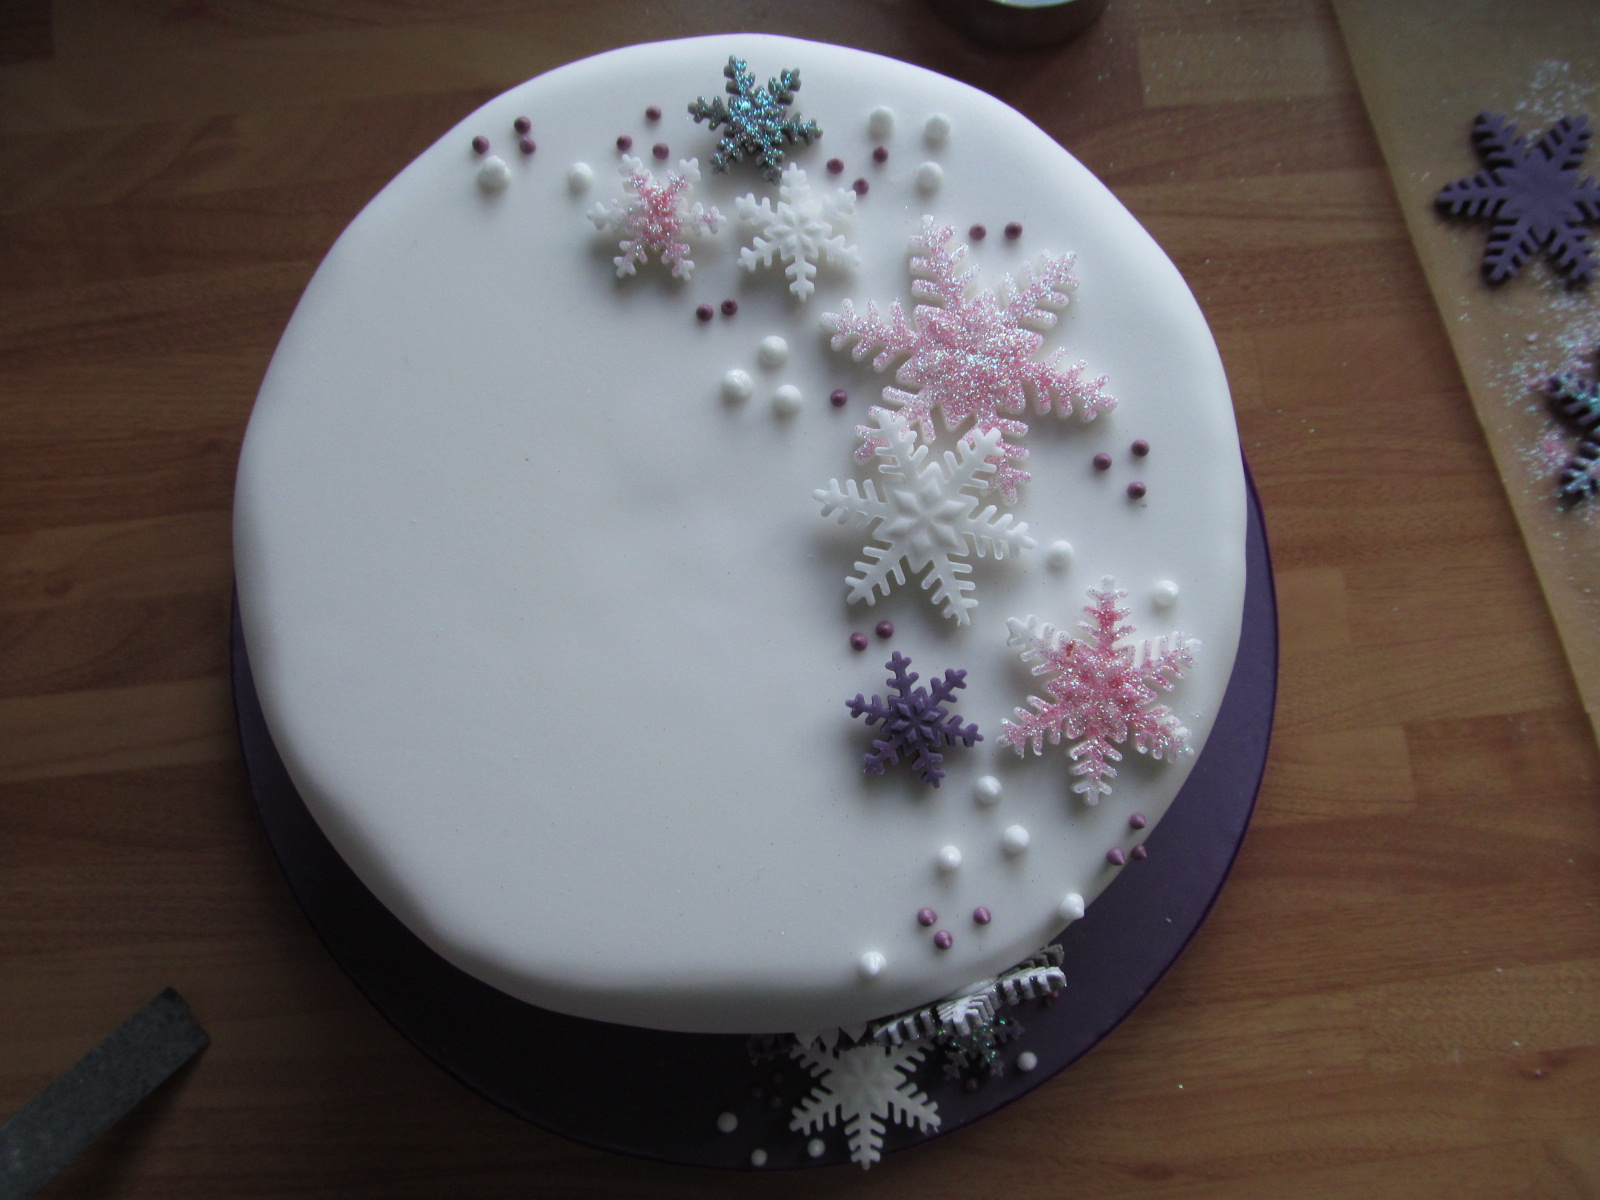 Christmas Cake Designs With Royal Icing : Good Food, Shared: Mich Turner s Snowflake Christmas Cake